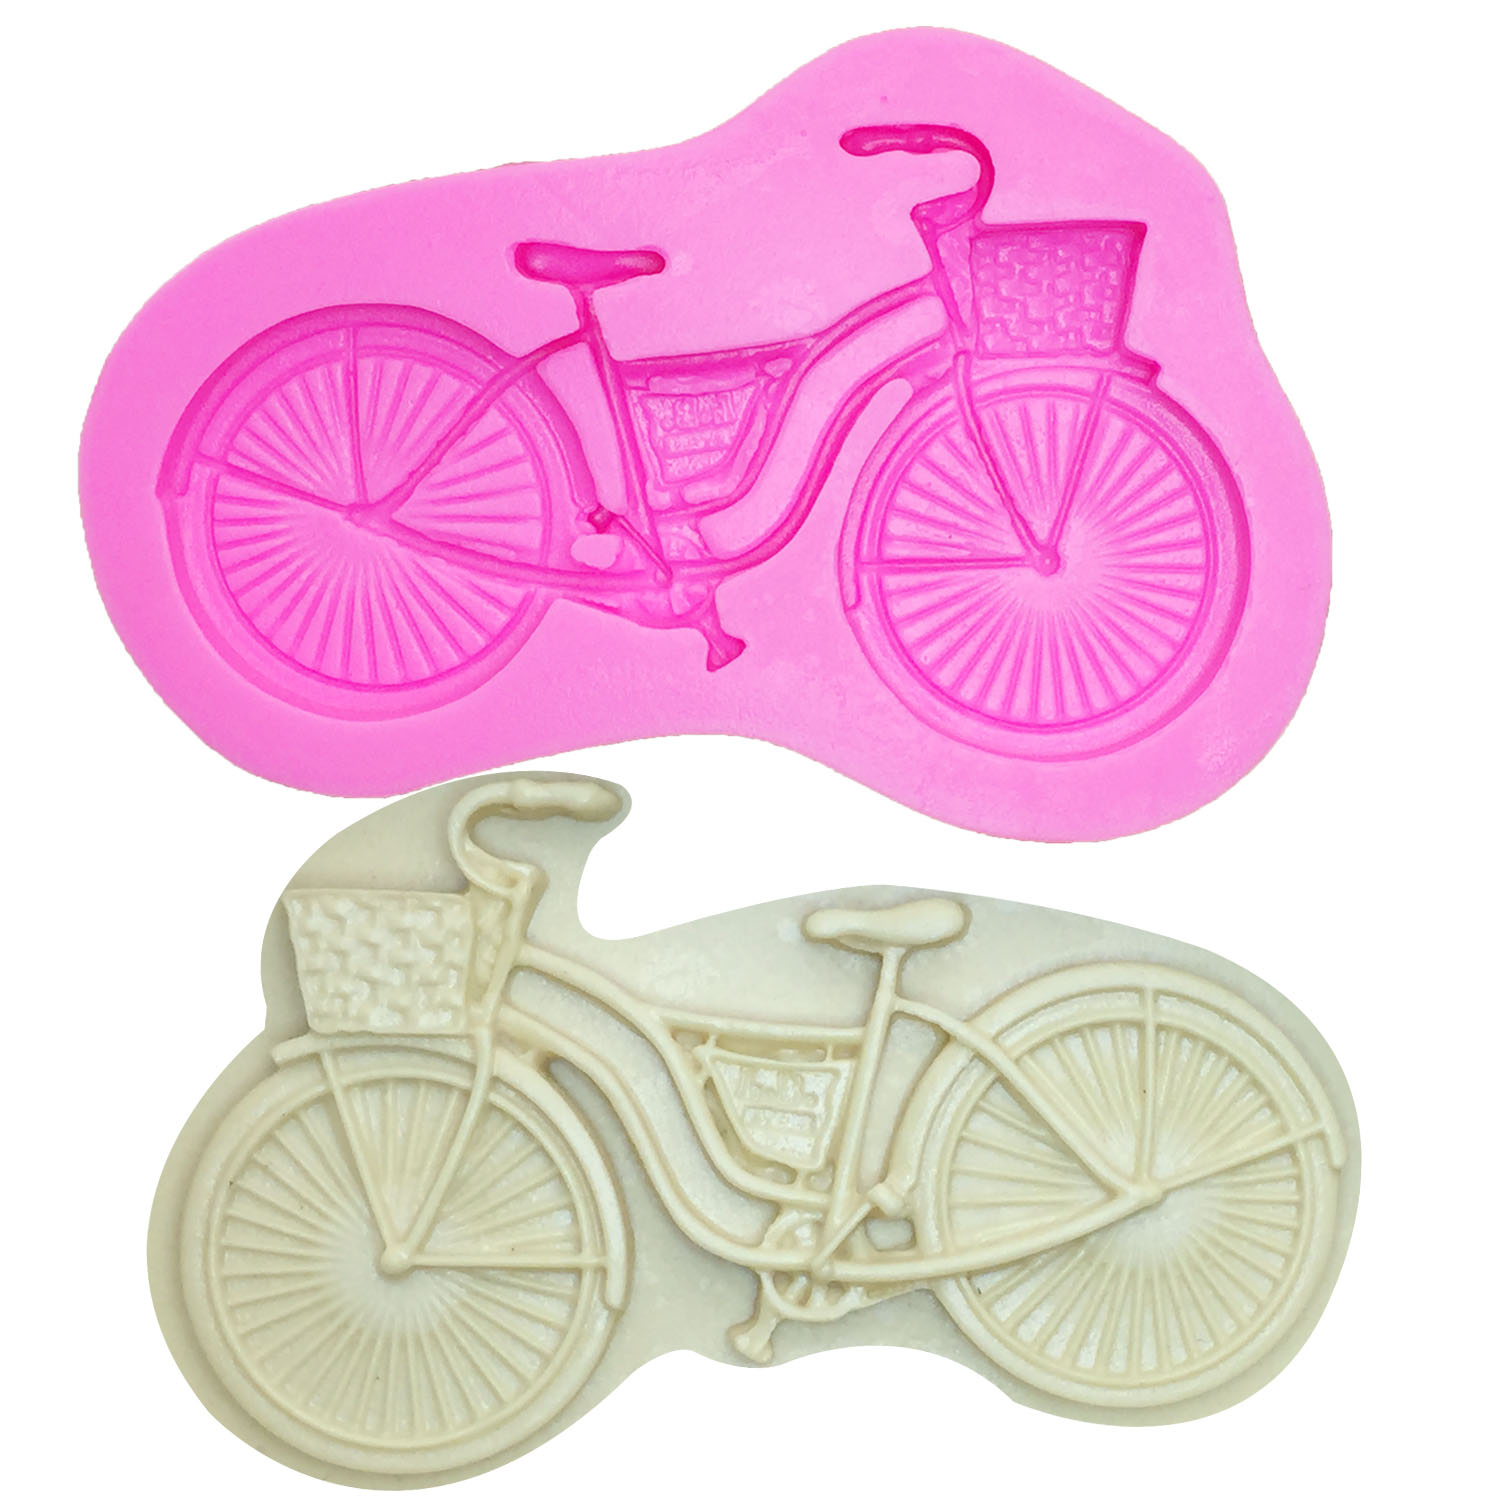 Buy bicycle cake decoration and get free shipping on AliExpress.com